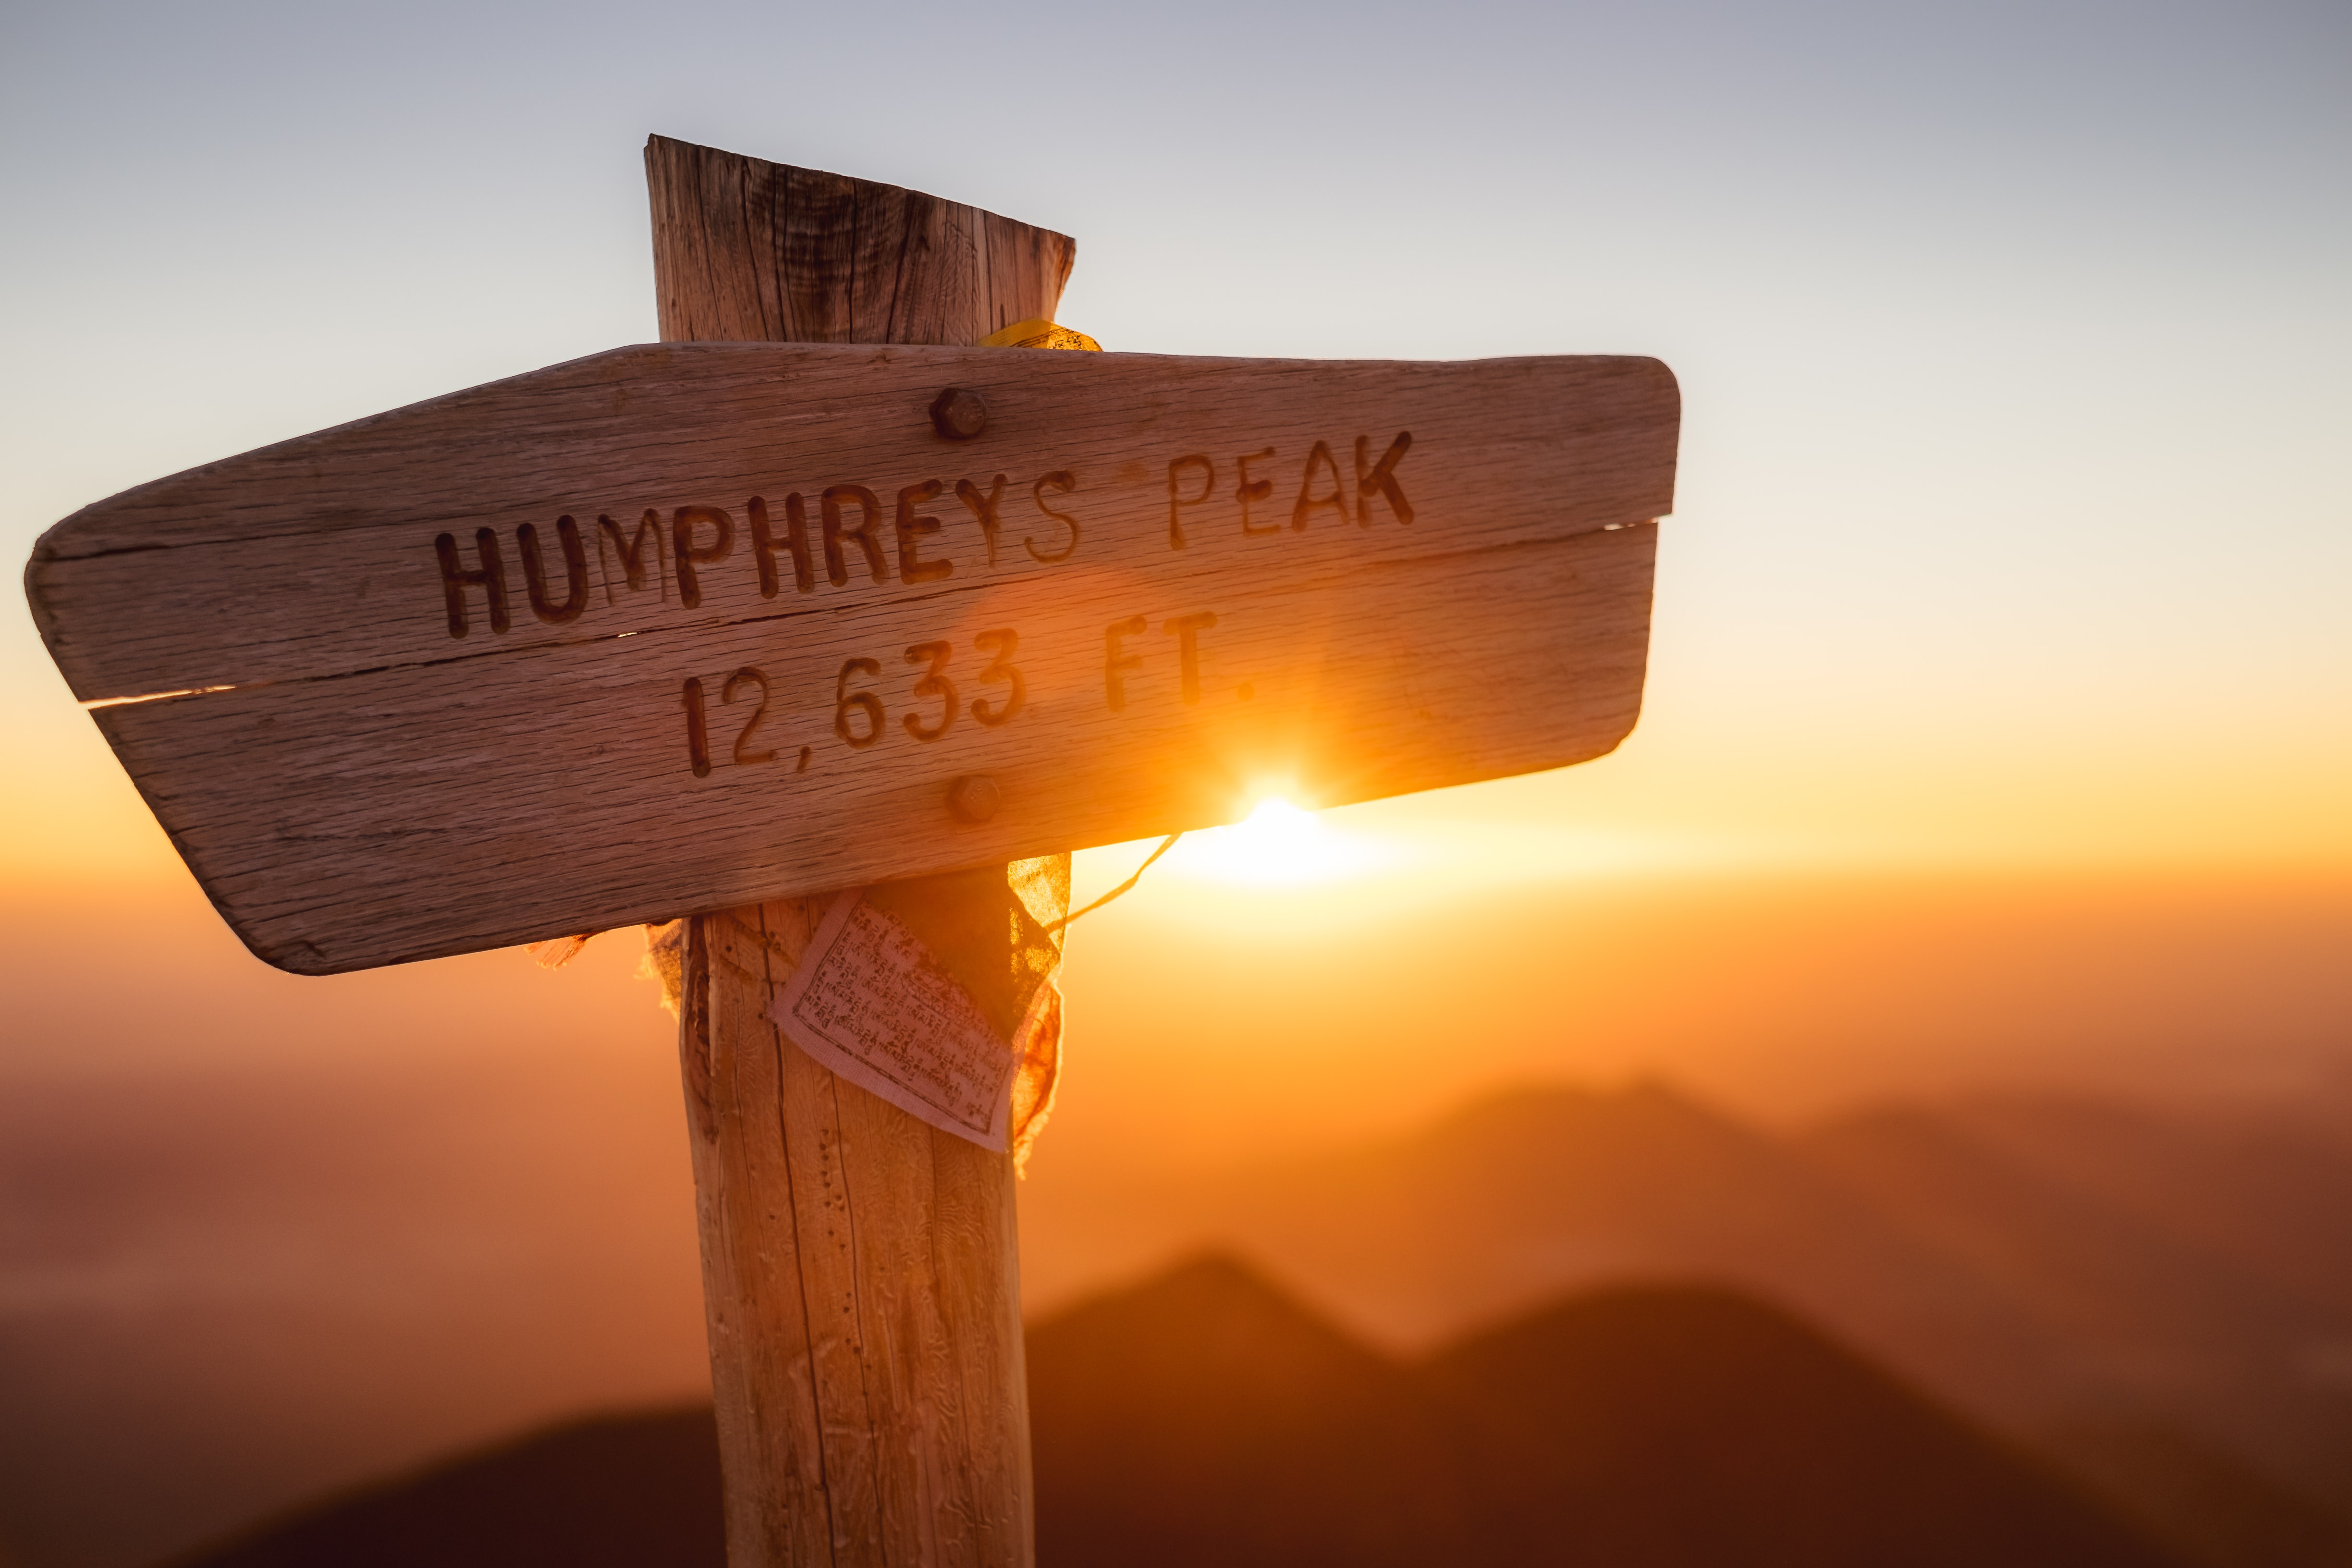 "A wooden signpost reading ""Humphreys Peak 12,633 ft"" during sunrise"